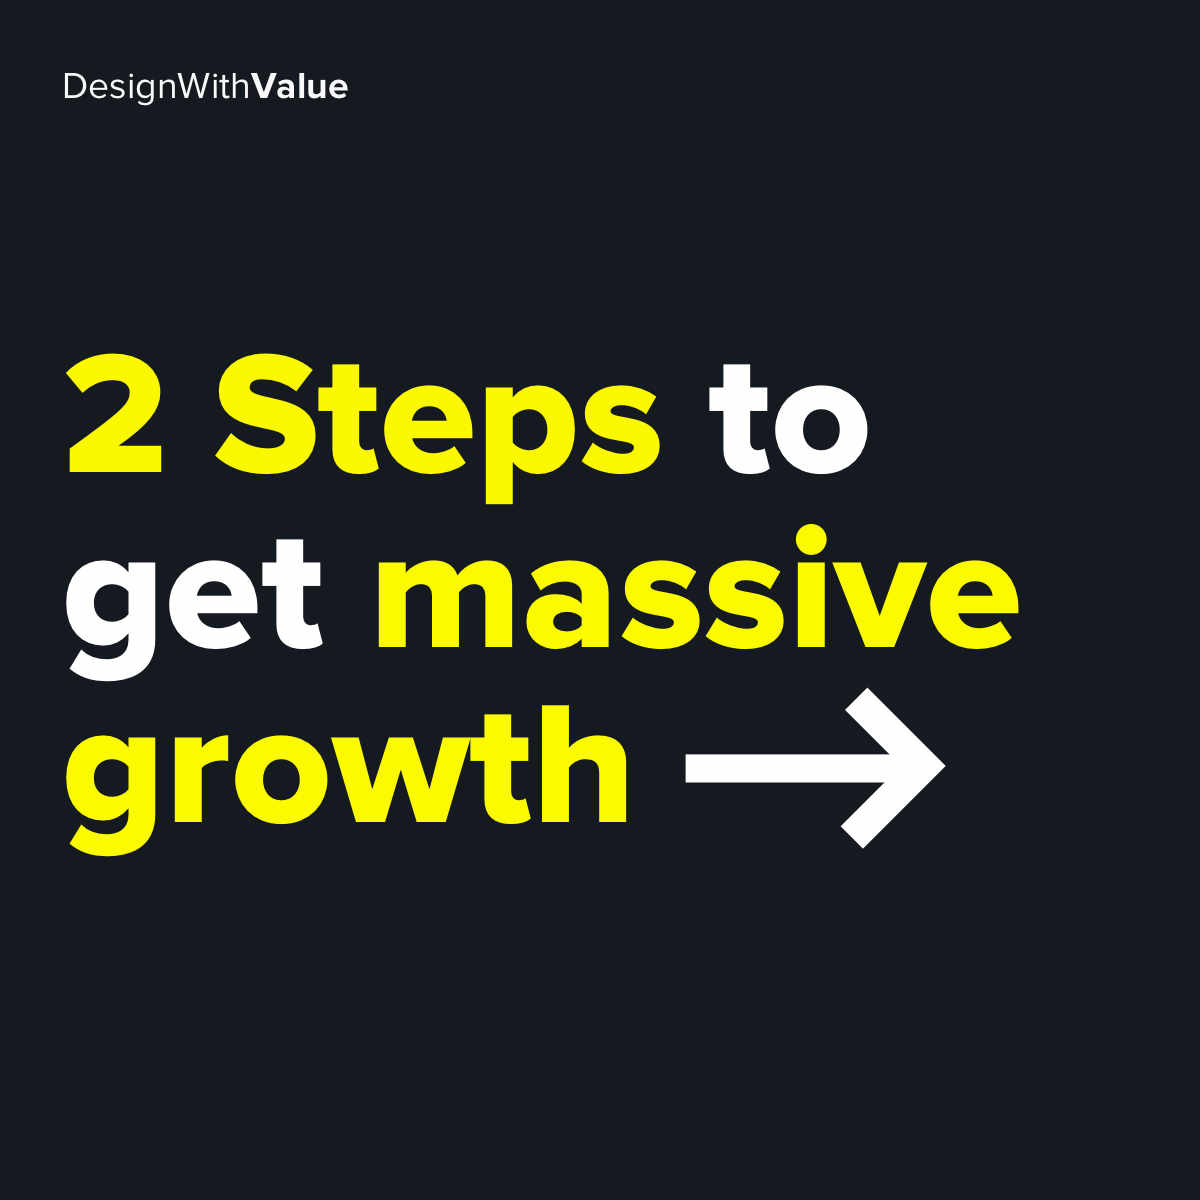 2 steps to get massive growth...